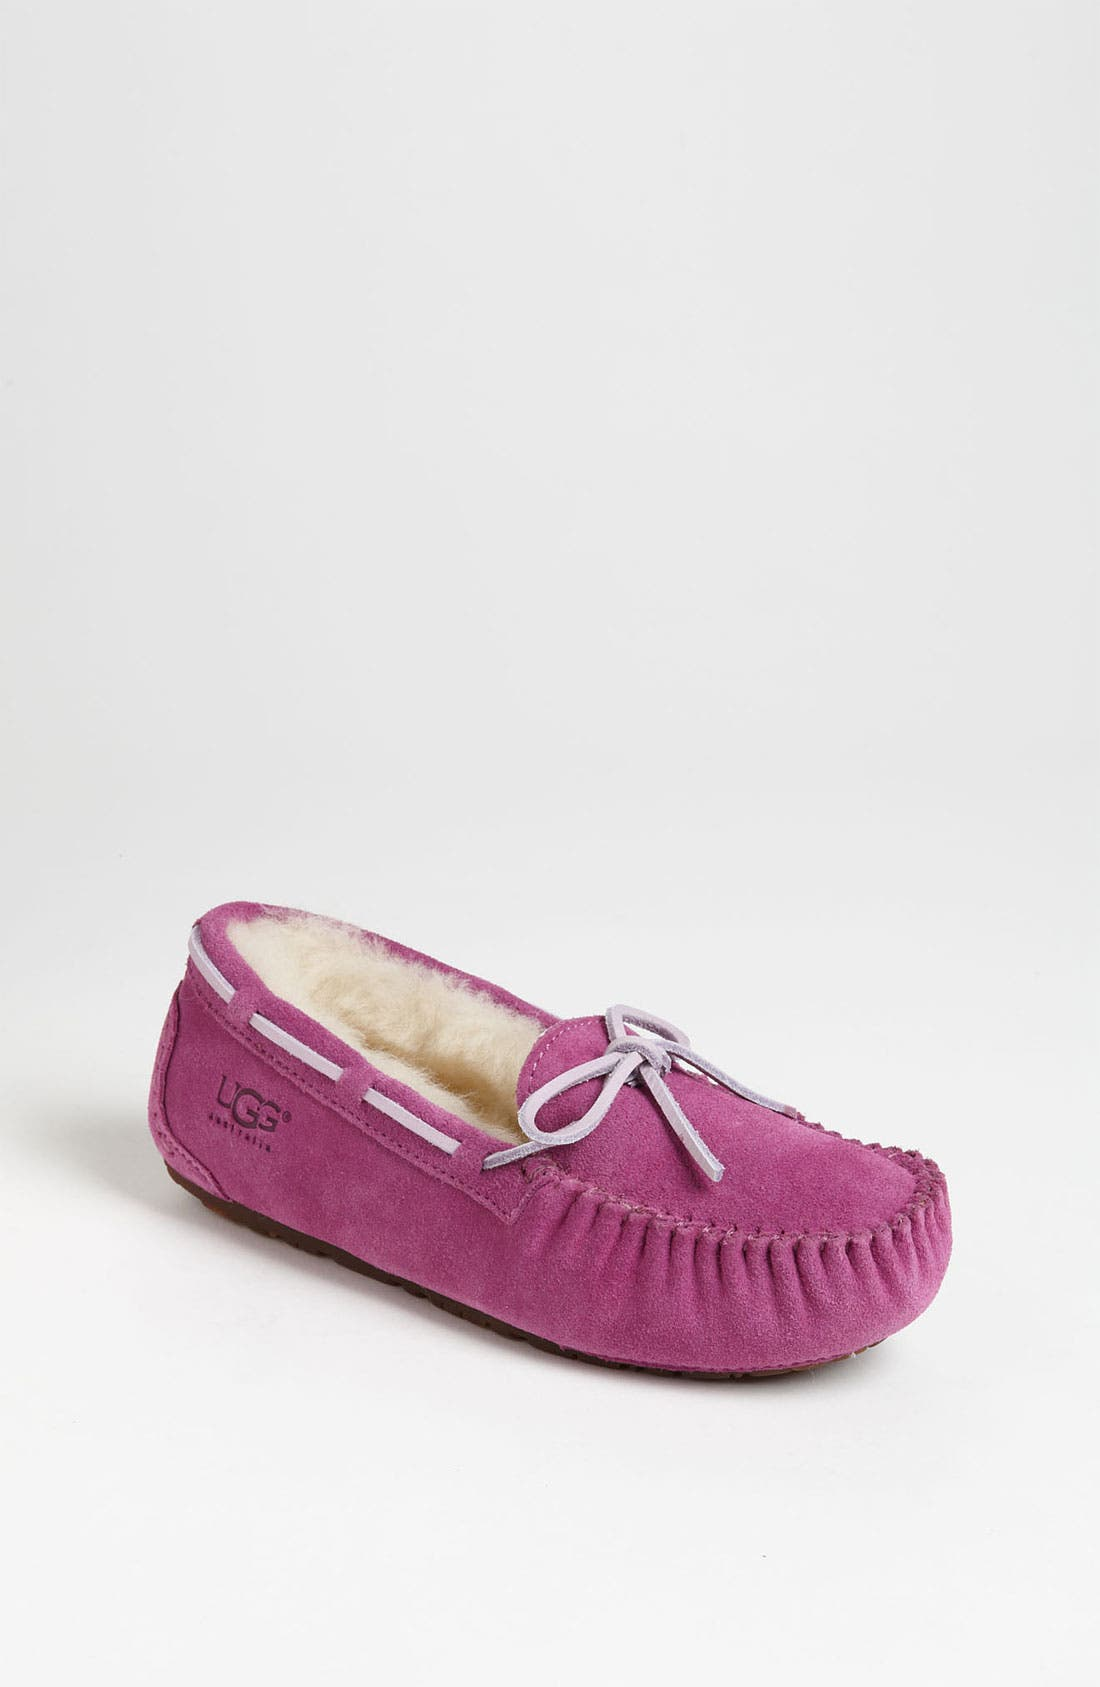 Alternate Image 1 Selected - UGG® 'Dakota' Moccasin (Little Kid & Big Kid)